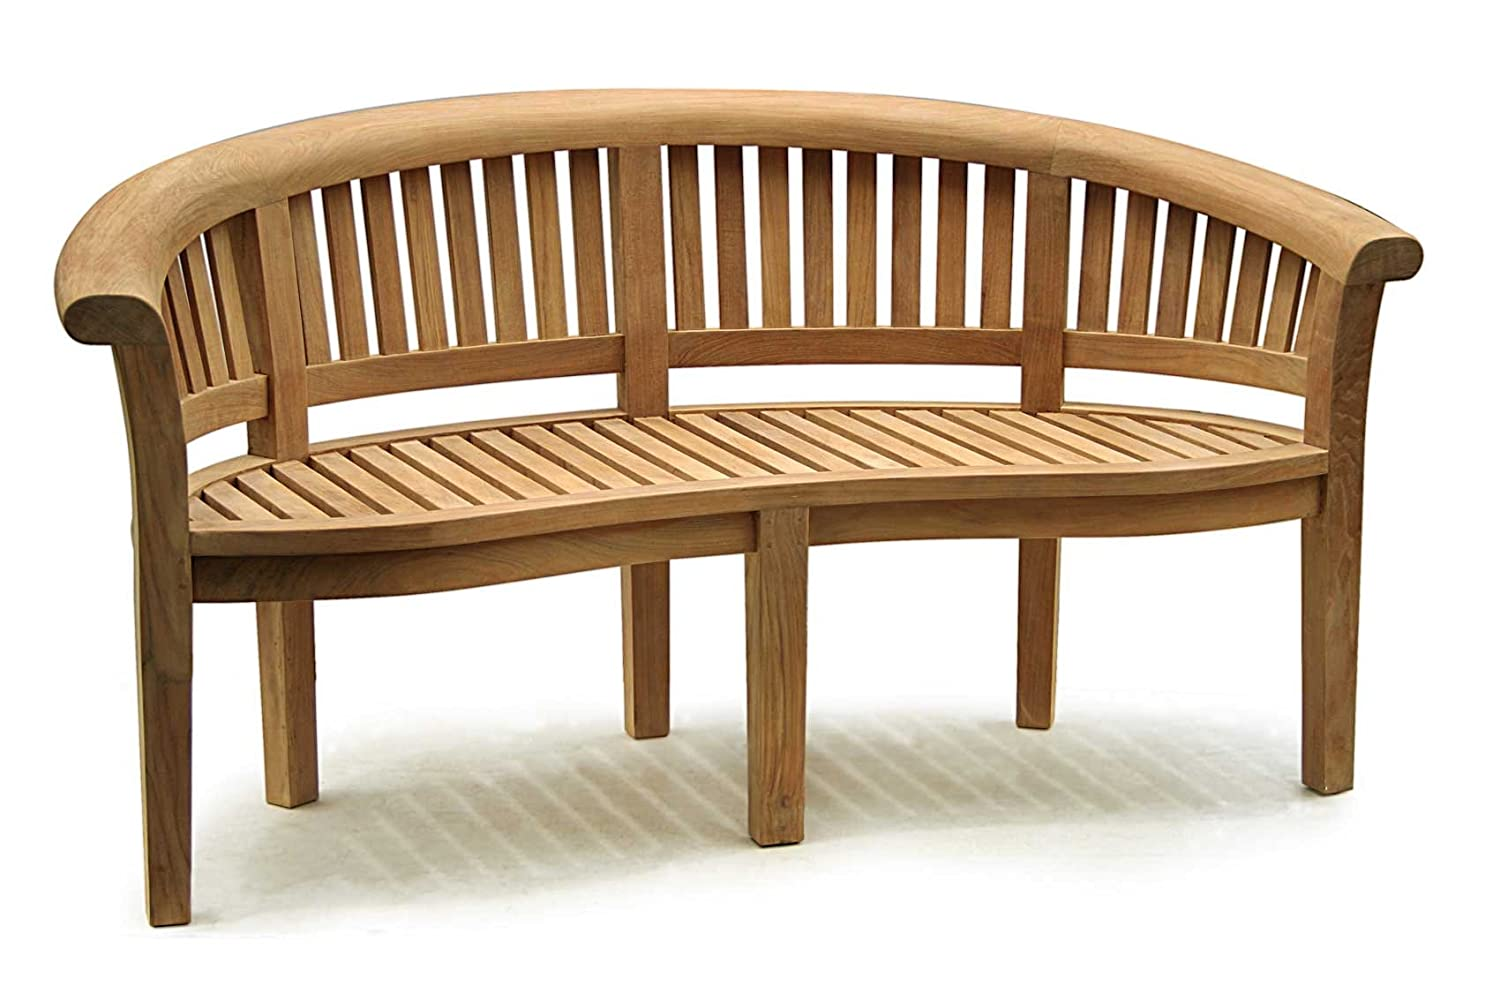 Curved Wooden Bench Images